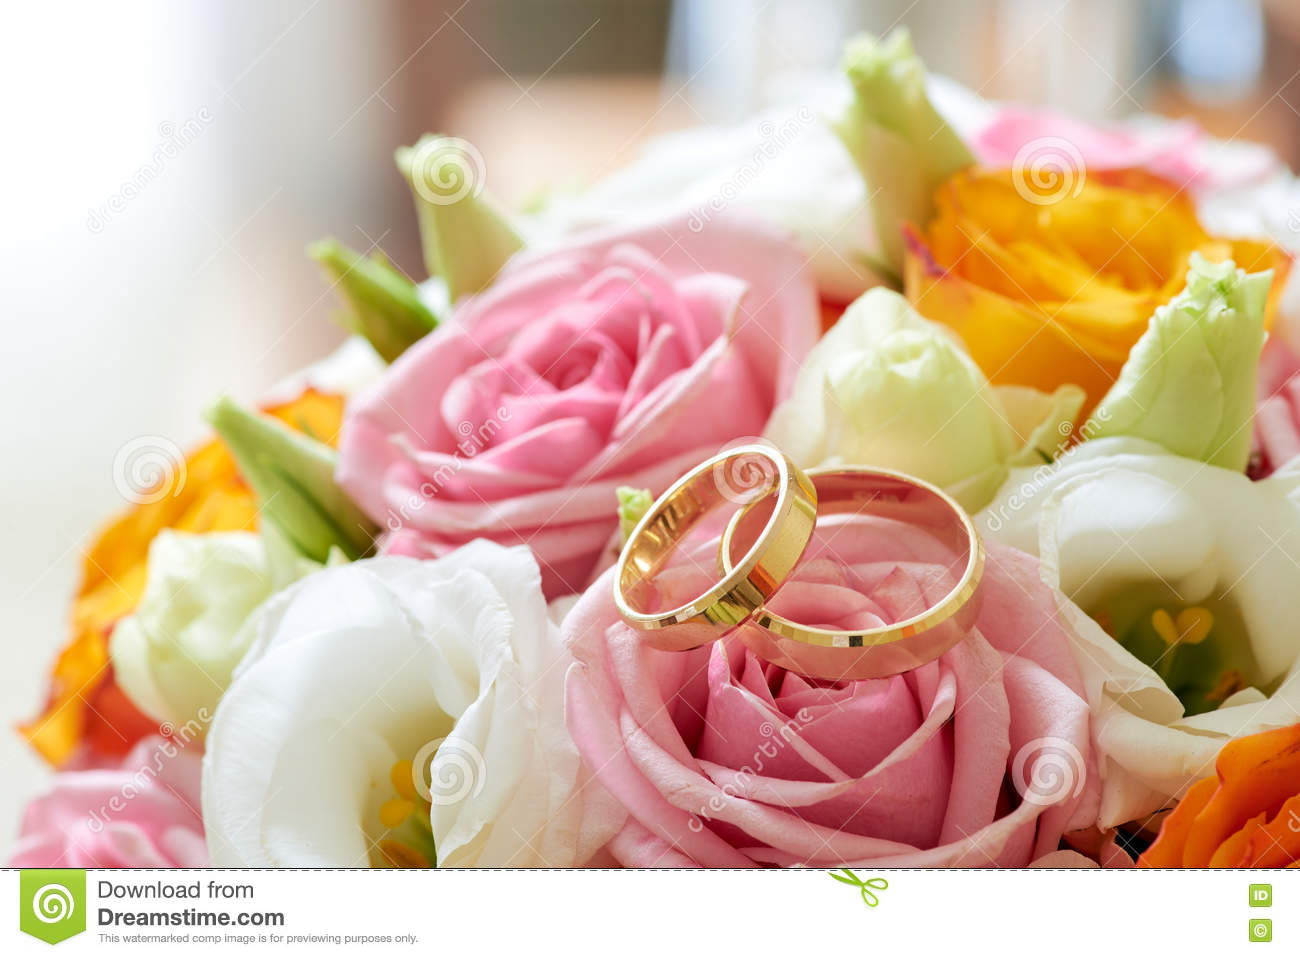 Bouquet Flowers And Weddings Rings Stock Image - Image of engagement ...